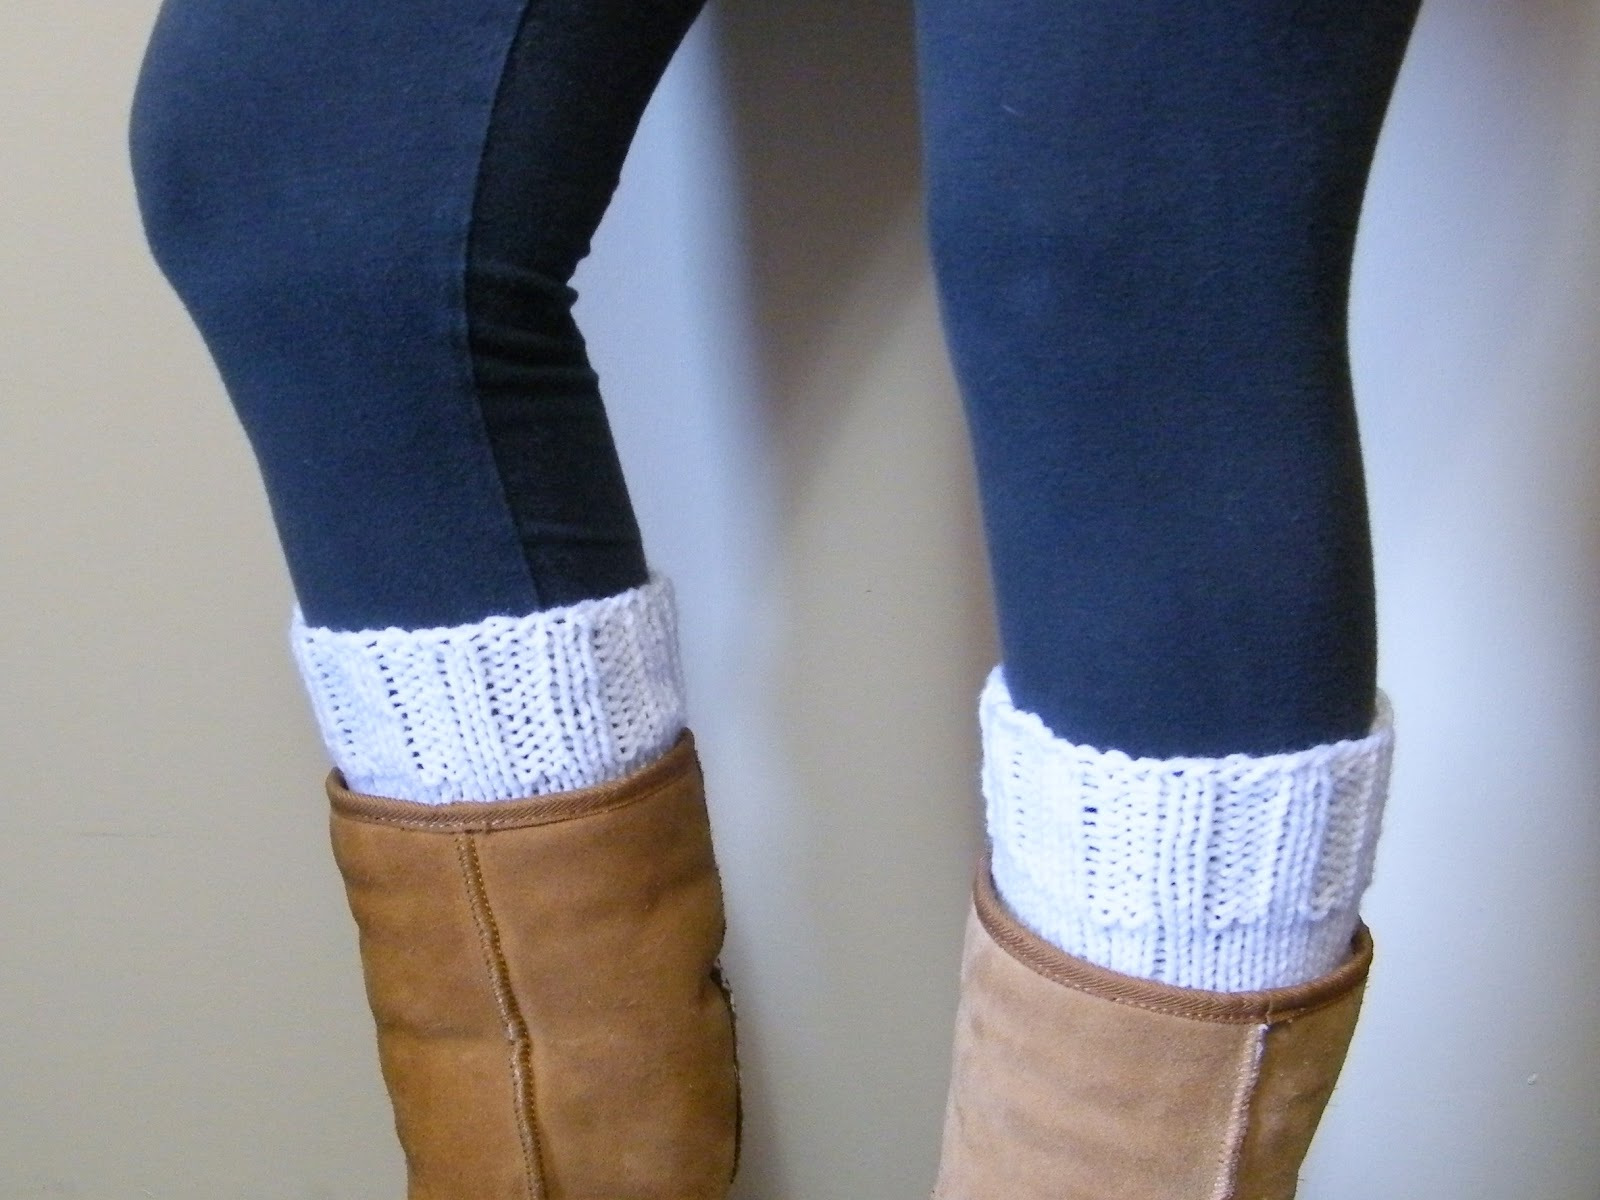 Knitting Patterns Free Boot Cuffs : Lewis Knits: Basic Boot Cuff Knitting Pattern